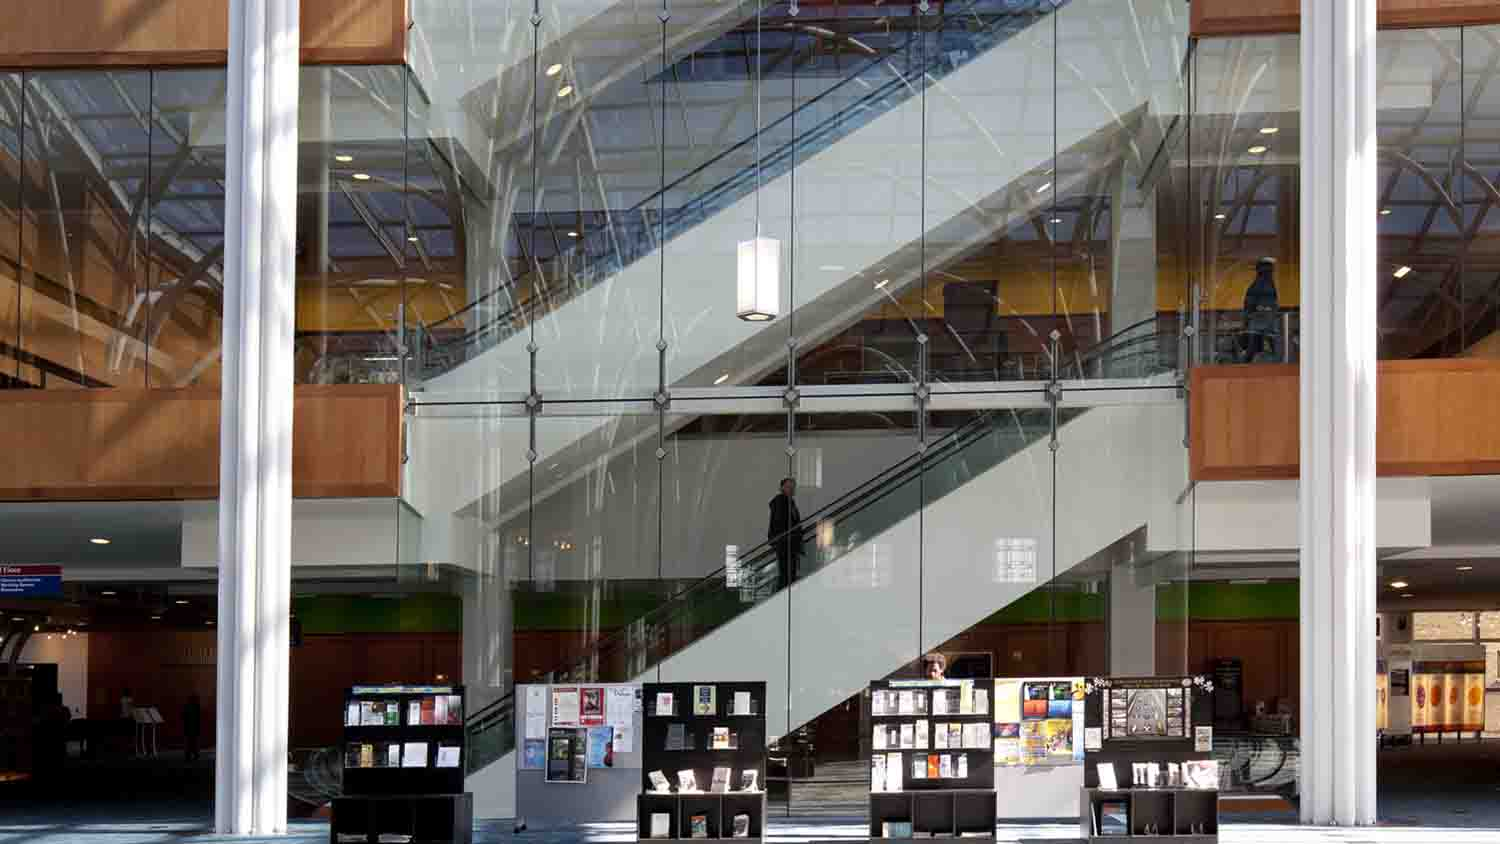 Central library 5